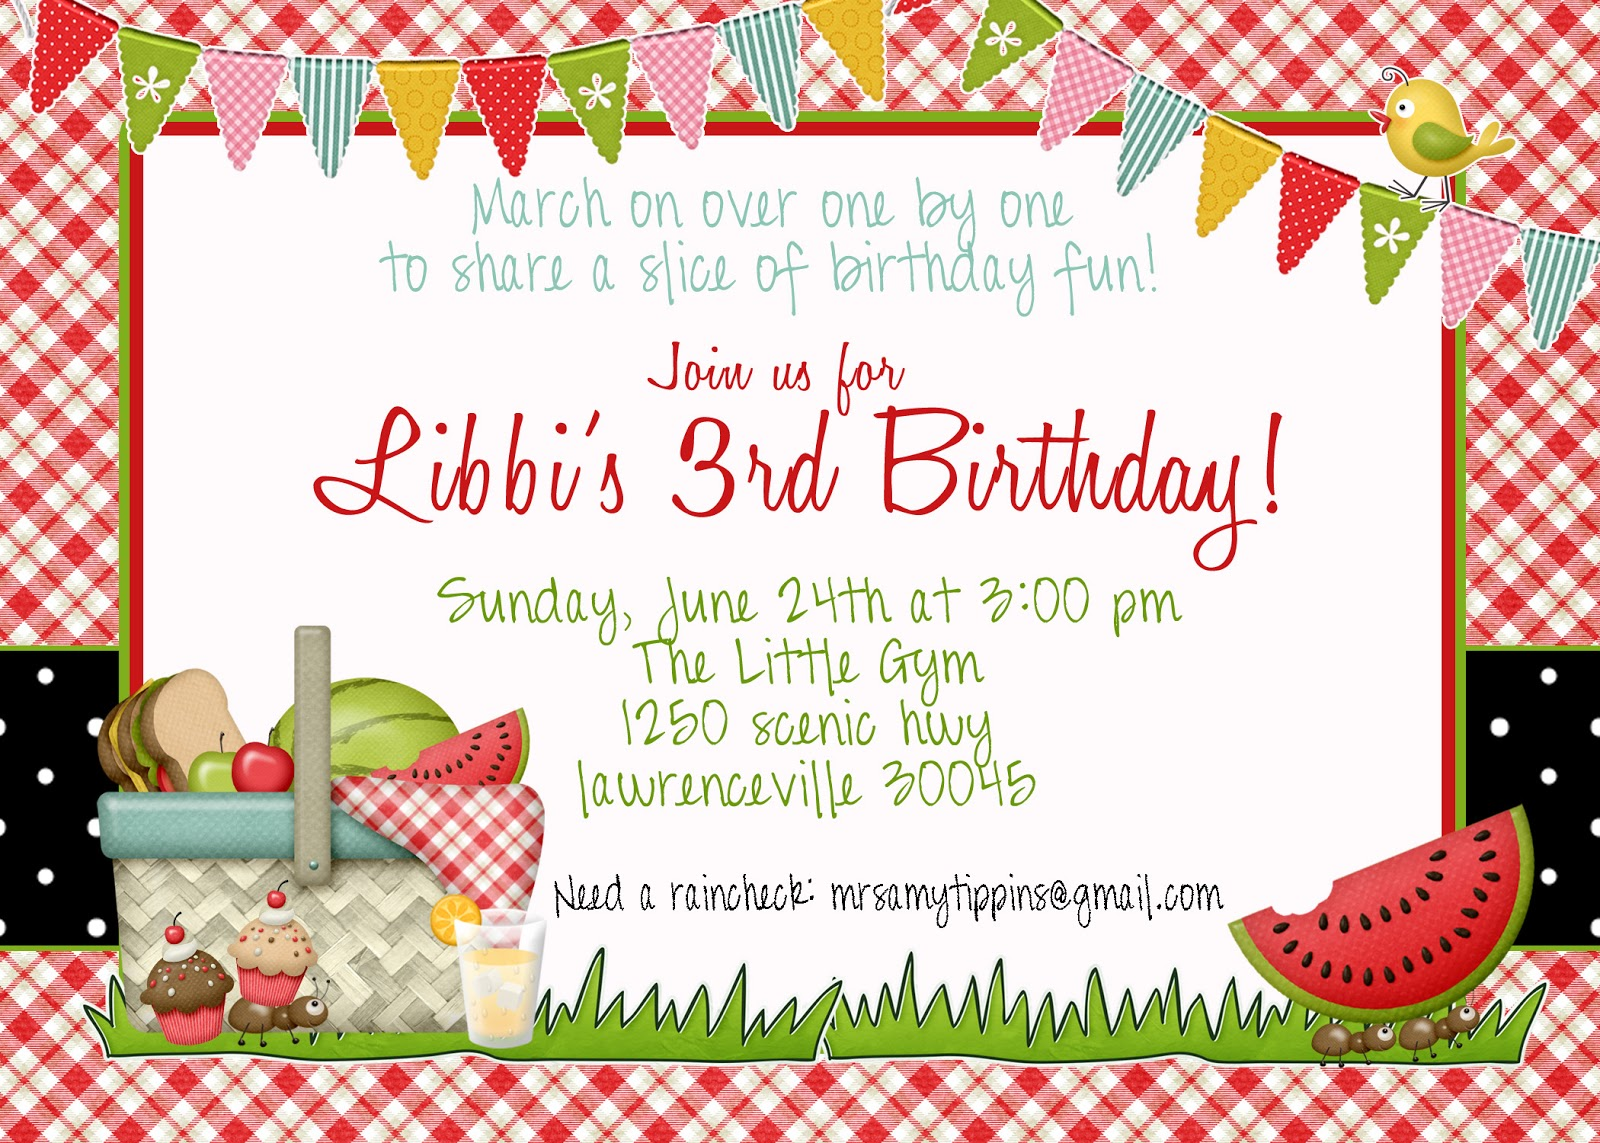 Picnic Invitation Template Birthday invitations